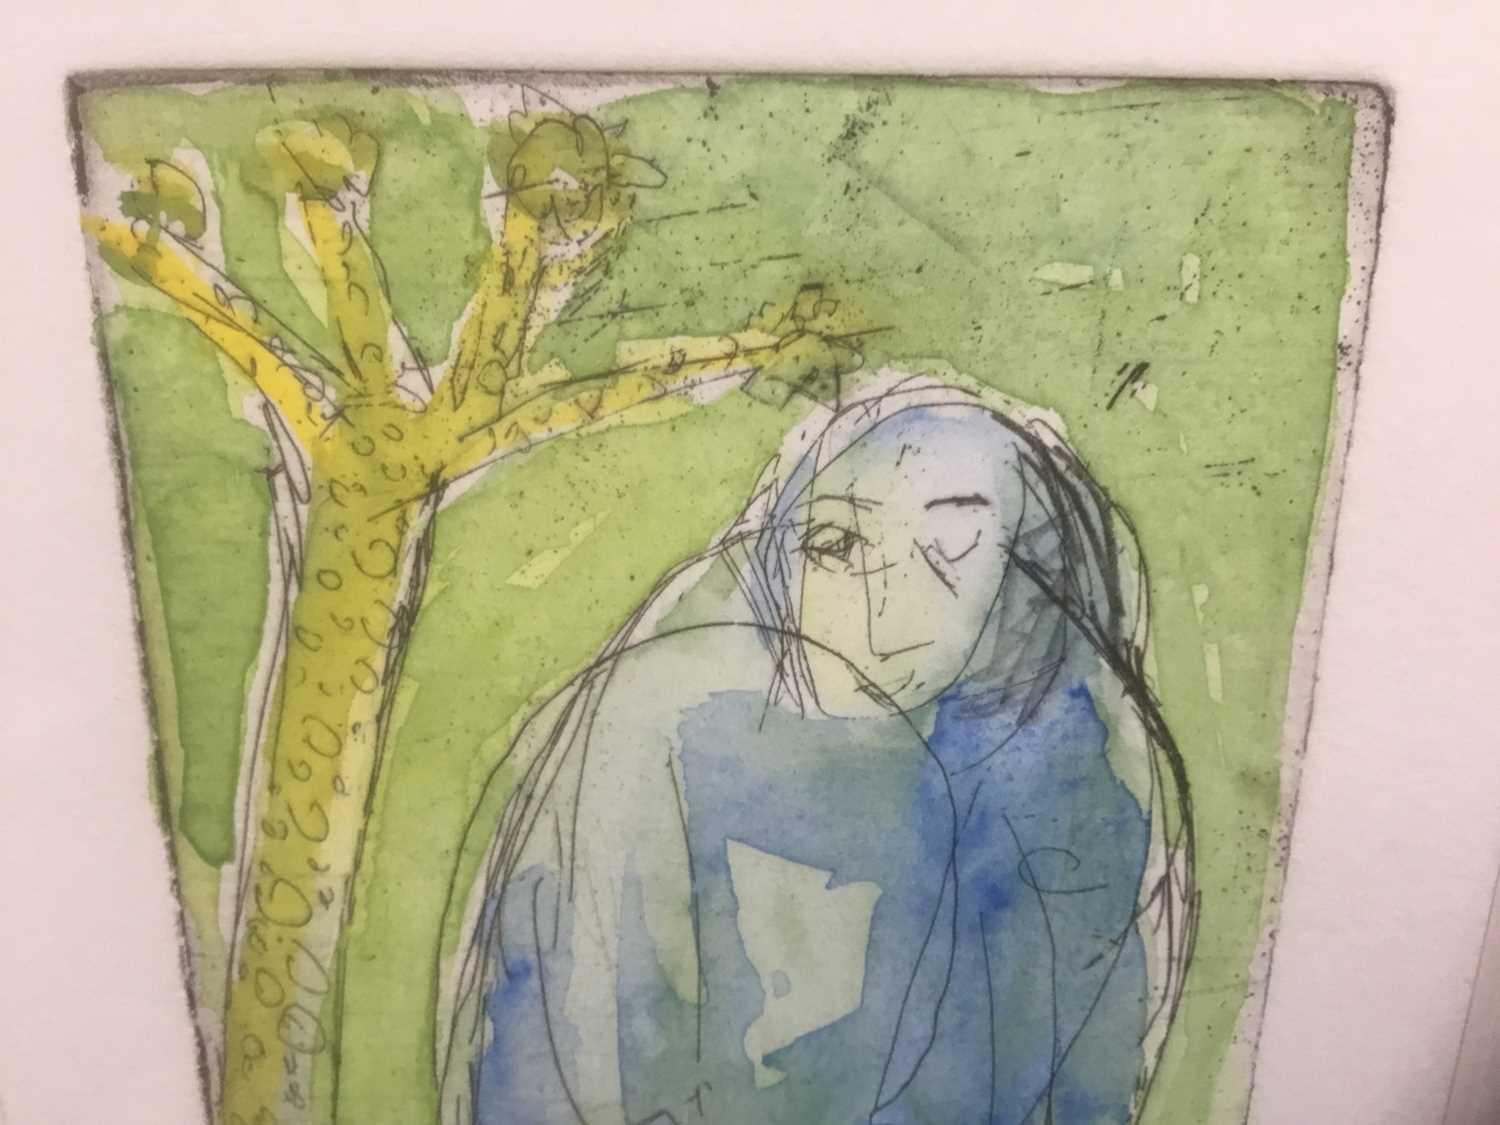 Marcia Blakenham (b. 1946), two signed etchings - figures, one numbered 15/16, in glazed frames - Image 7 of 9